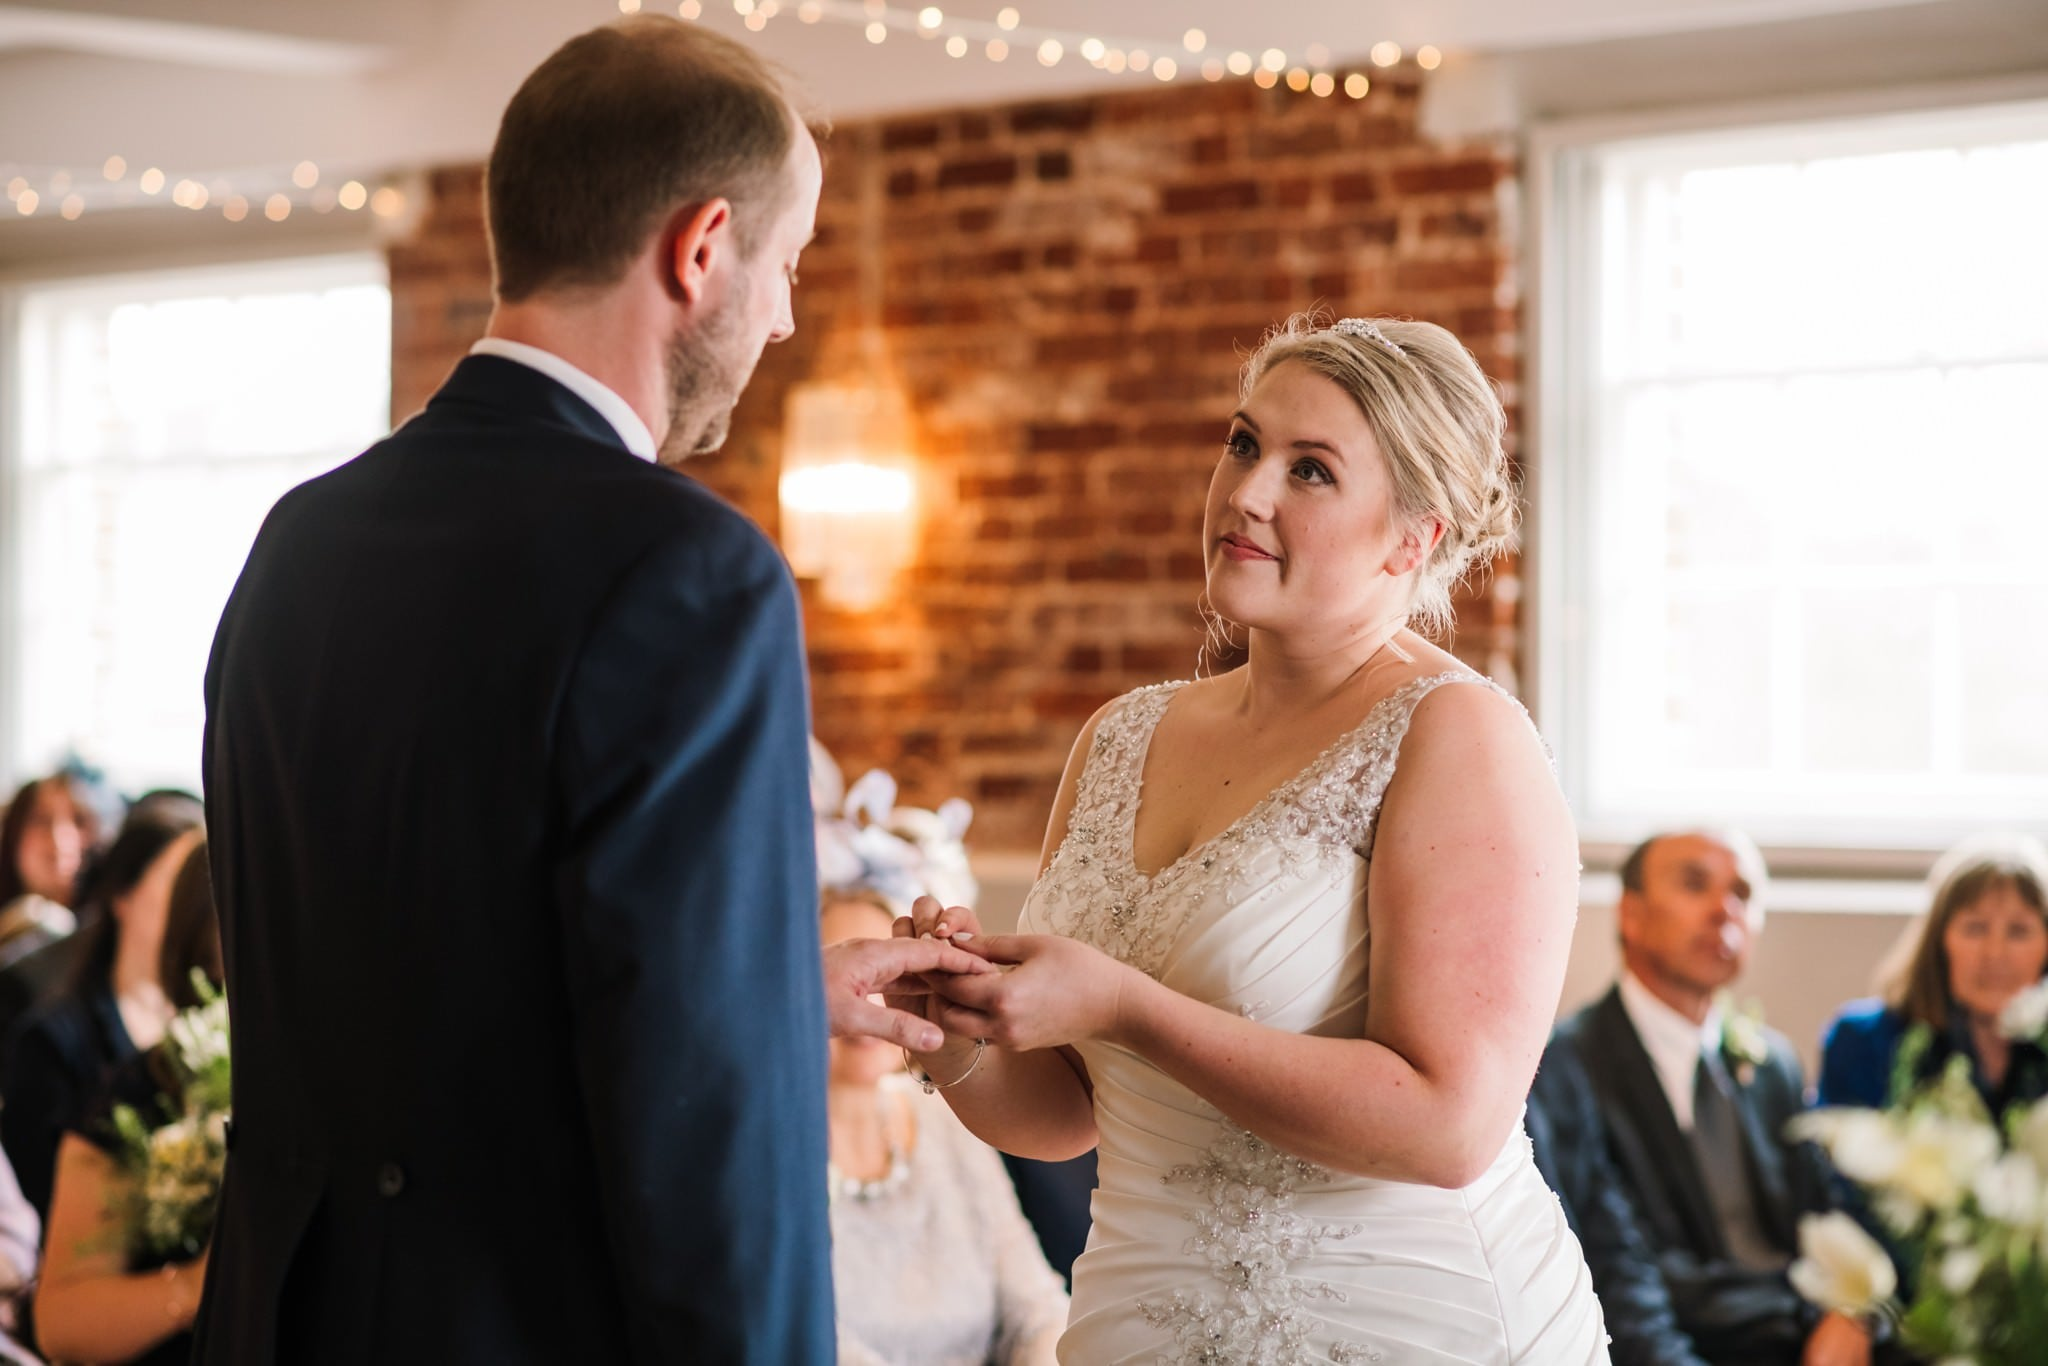 Wedding ceremony at Sopley Mill